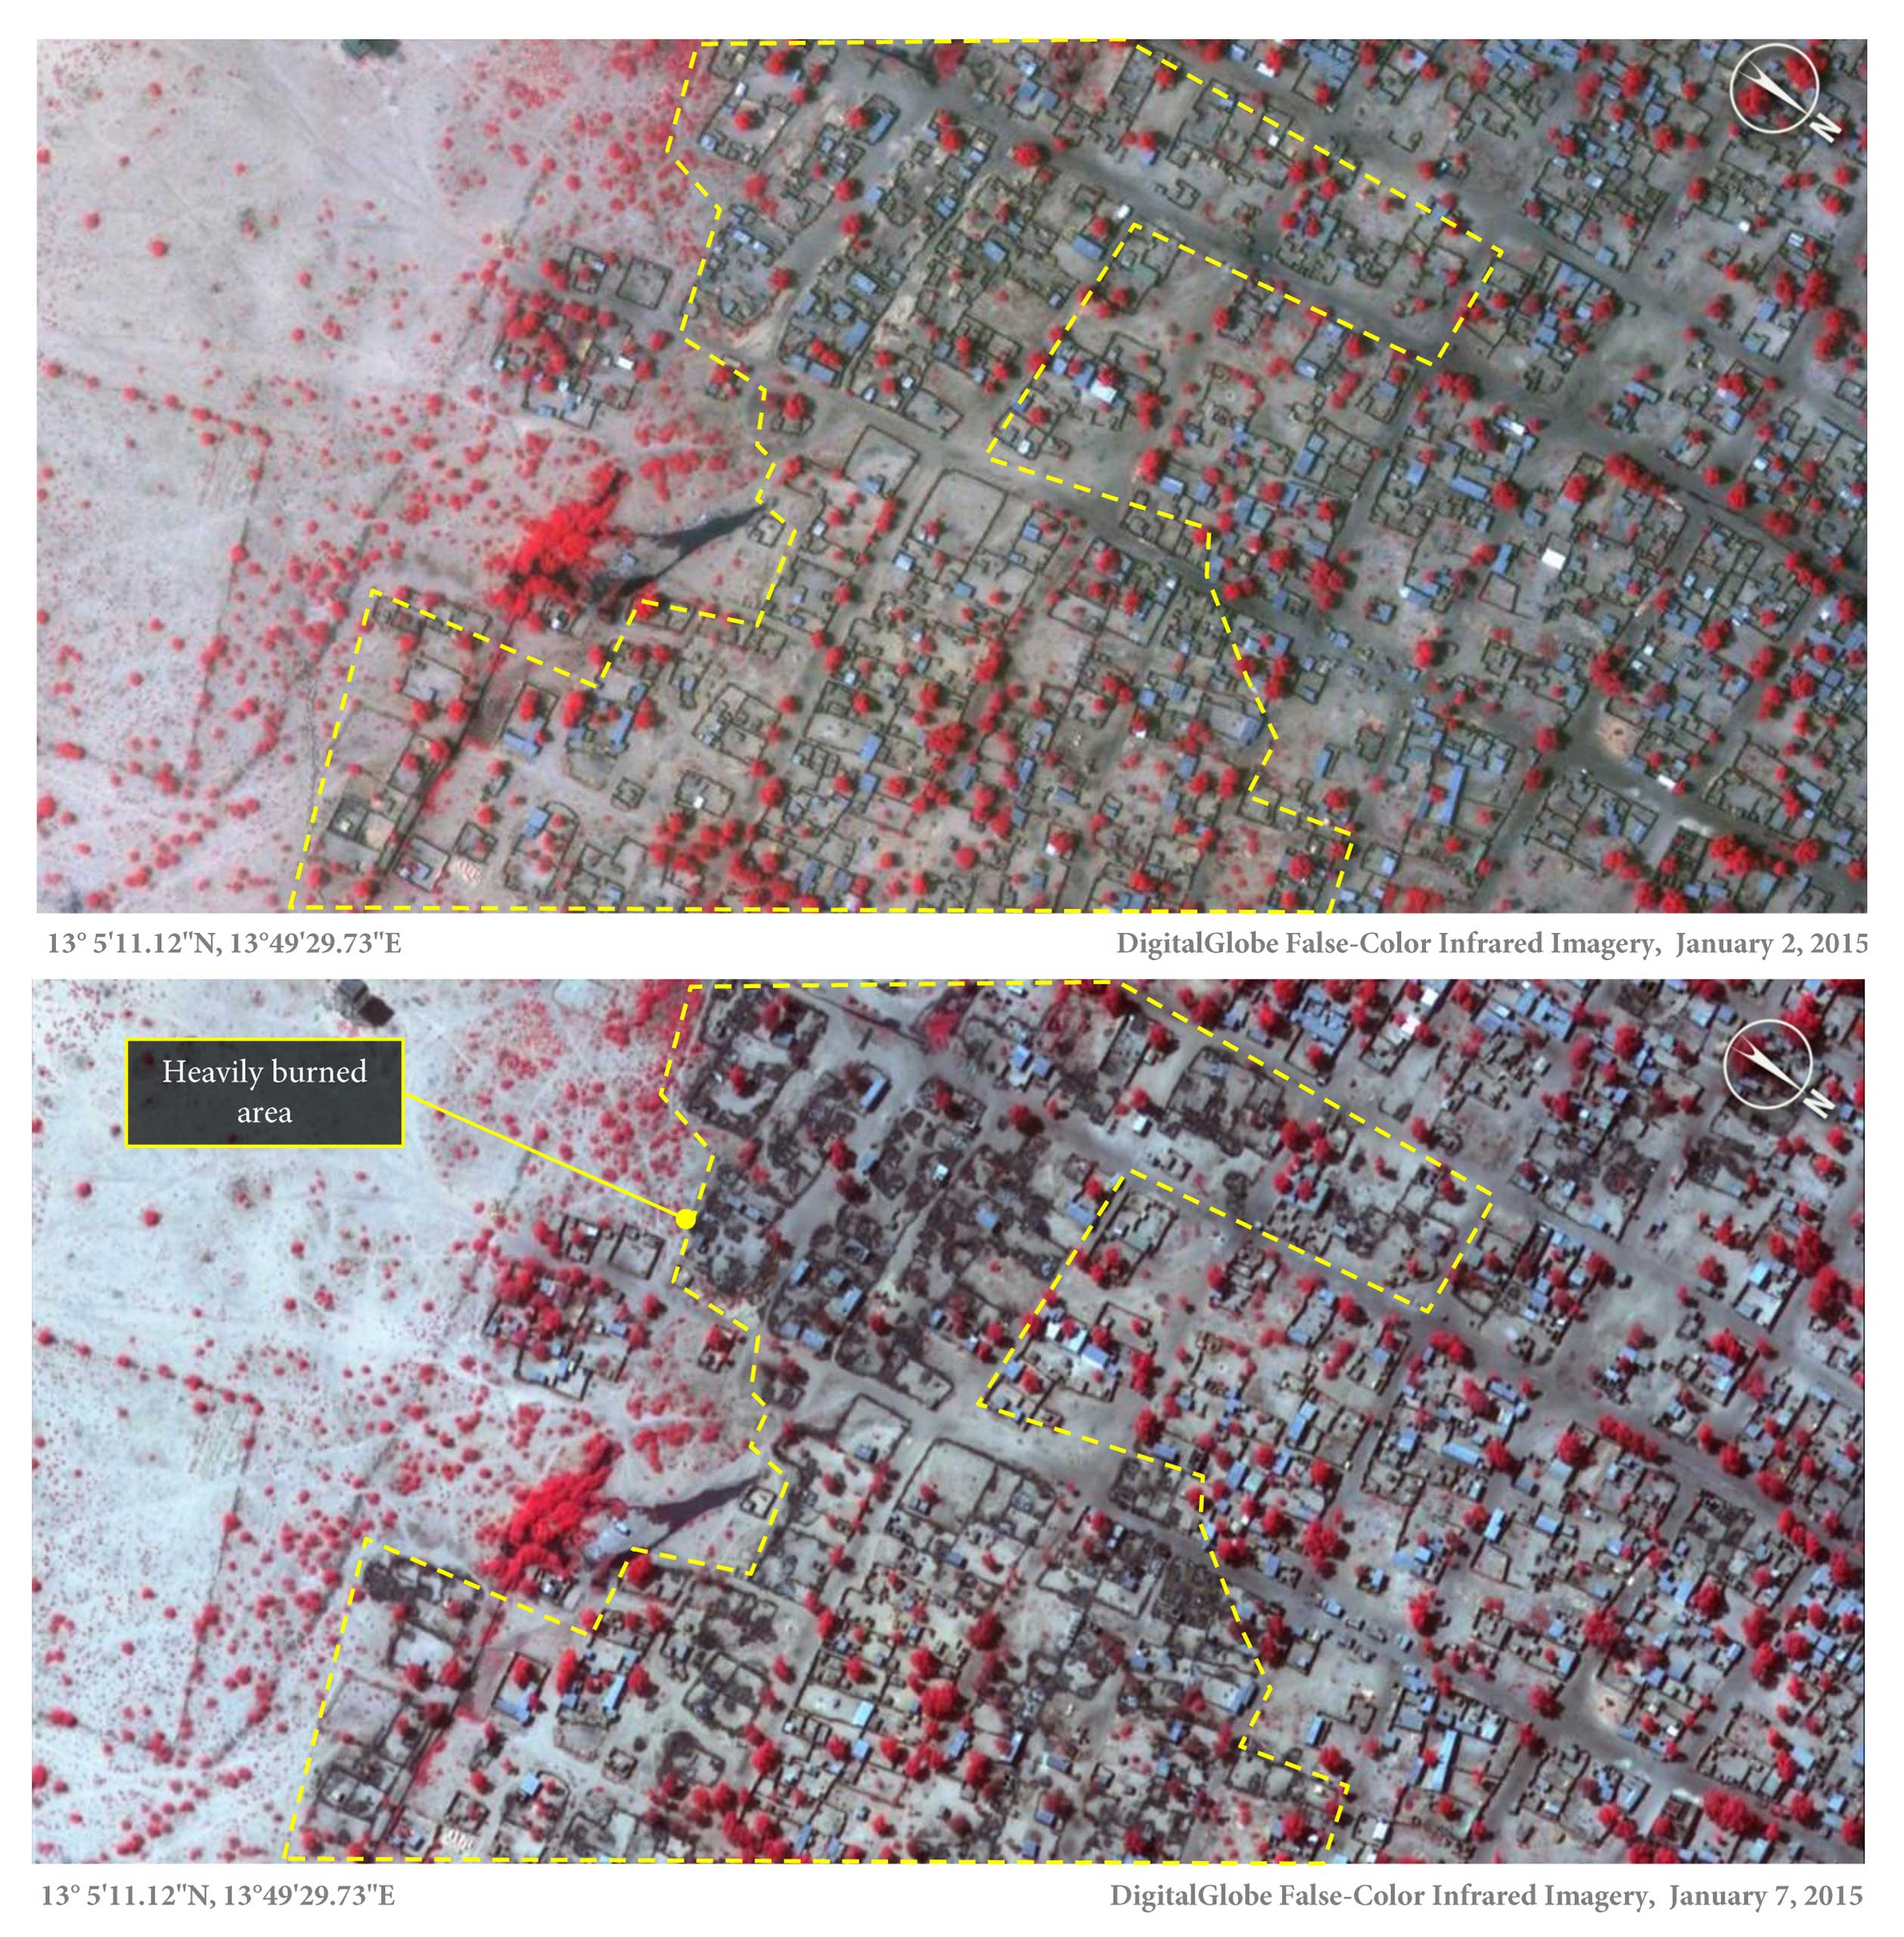 Above is a Jan. 2, 2015, image of Baga, northeastern Nigeria, when many thatch roof structures are visible. (These had been rebuilt since the attack on Baga in April 2013.) Below, in the Jan. 7 image, shows many of them were razed. (The dark color represents burned areas, while the red indicates heathy vegetation.)